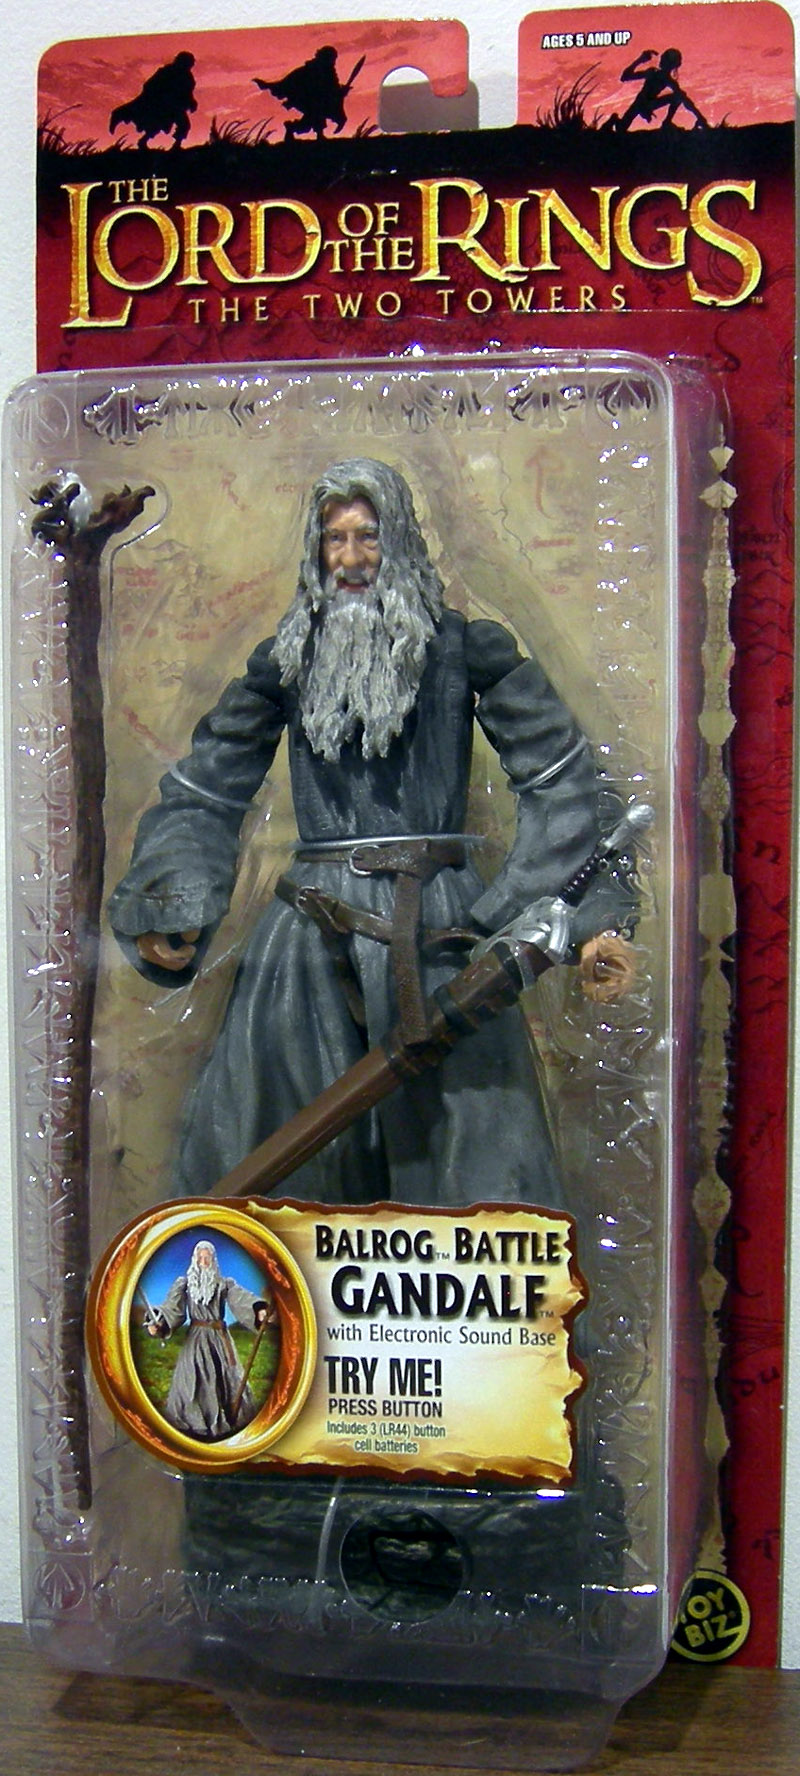 Balrog Battle Gandalf (Trilogy)